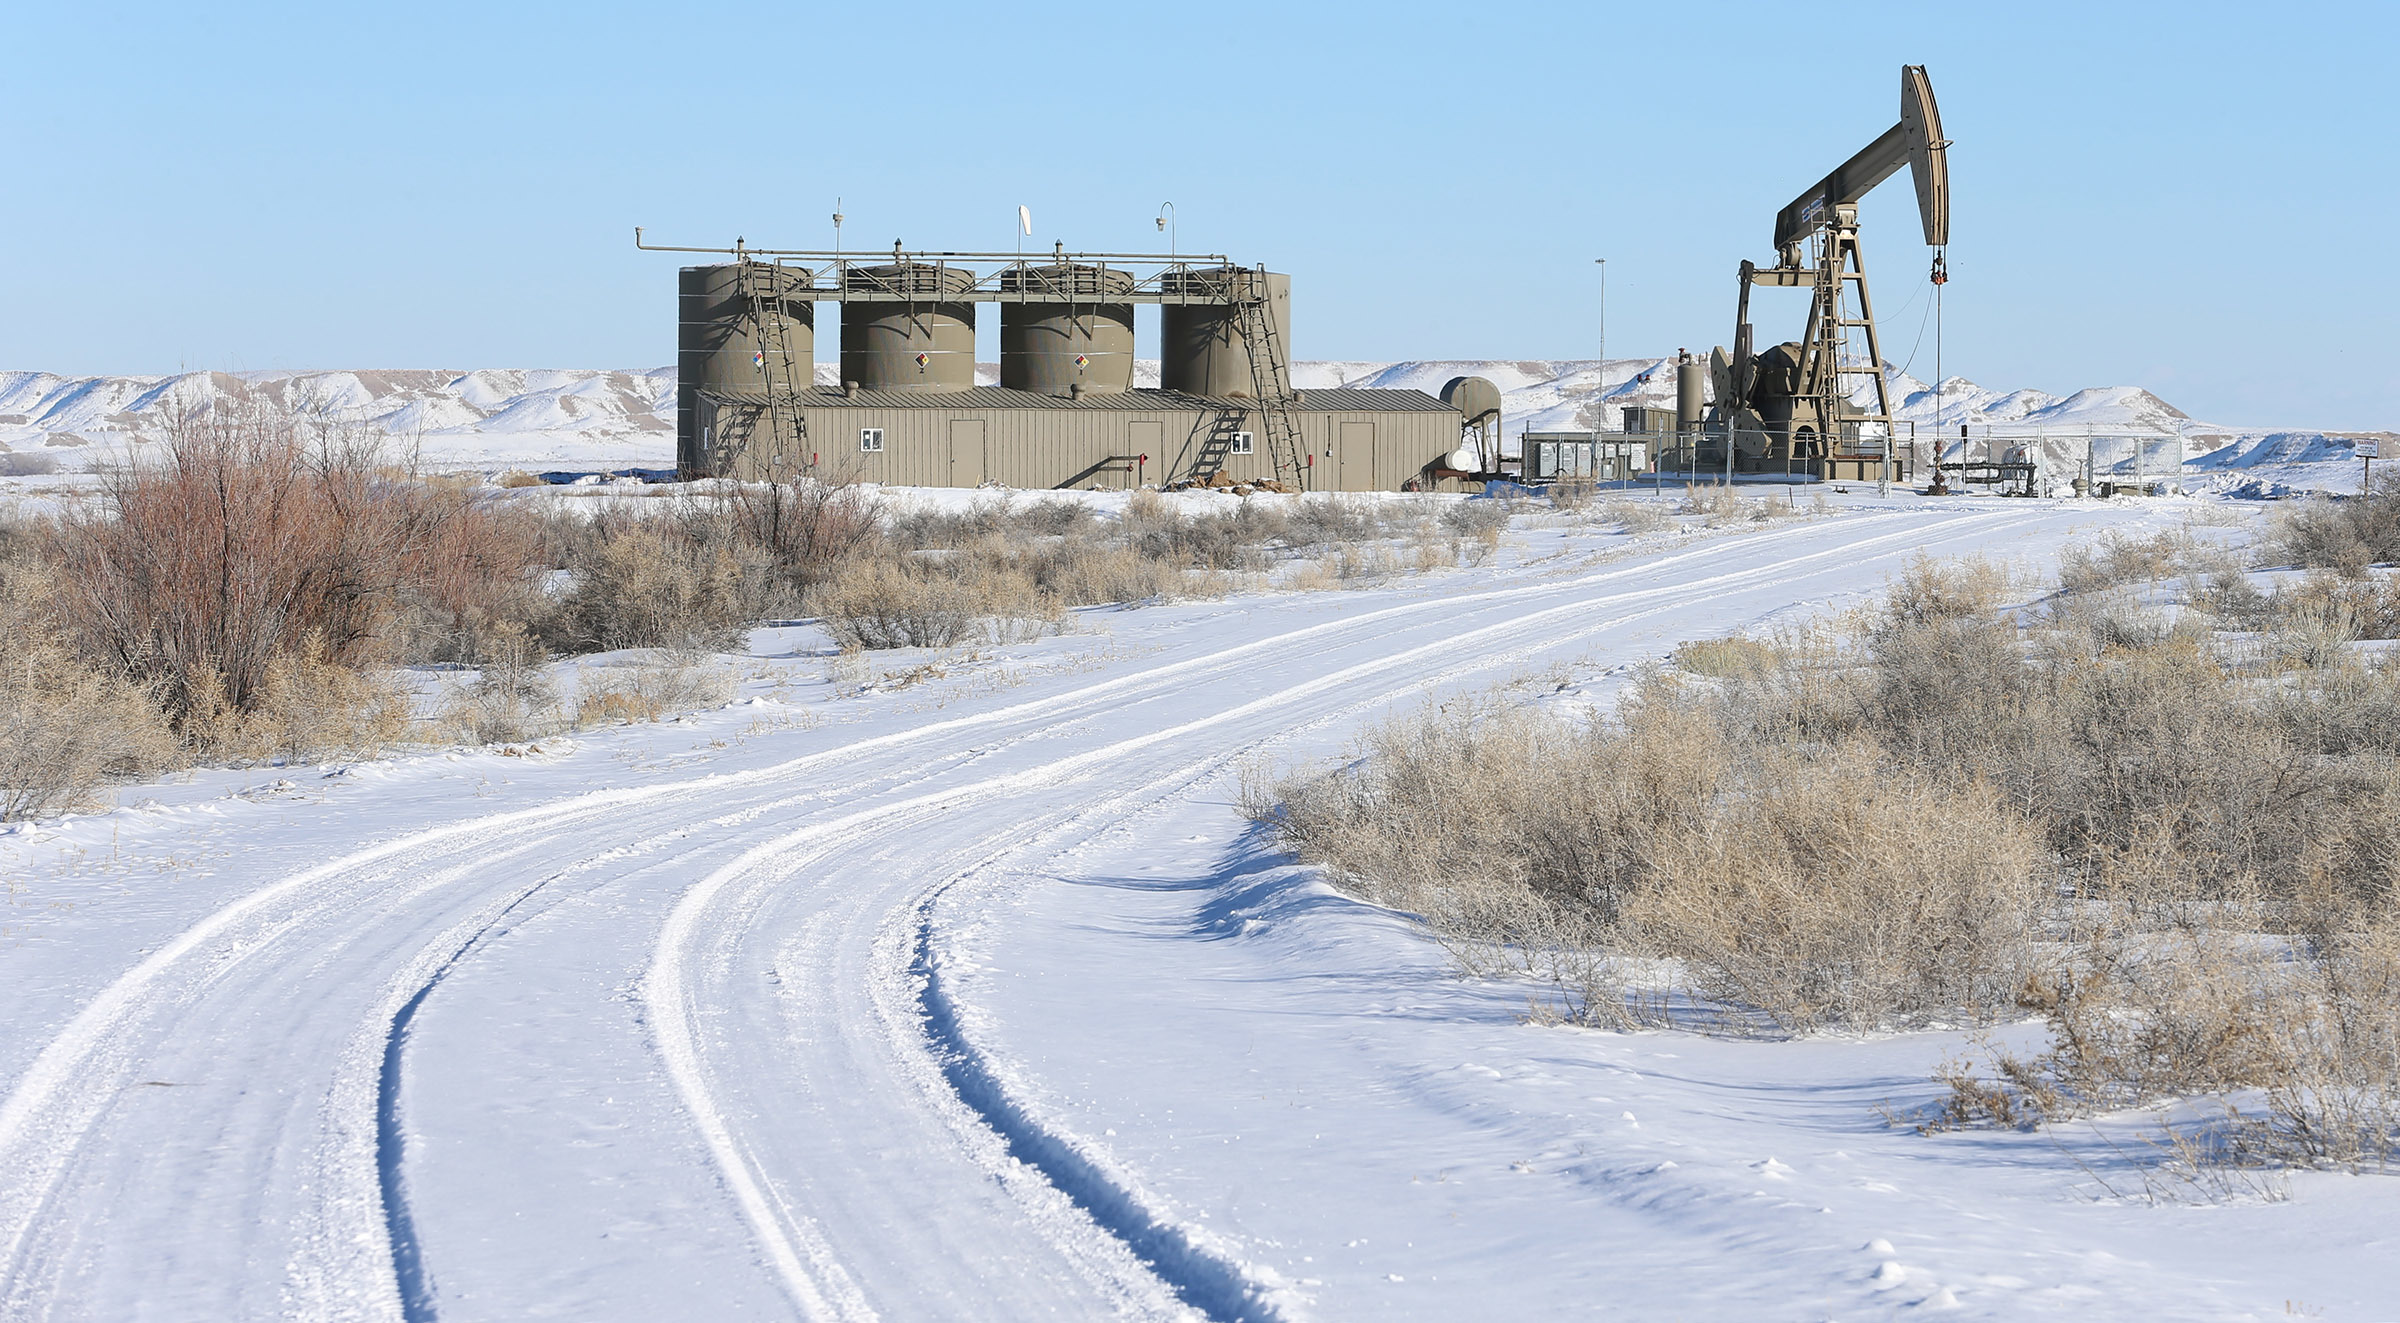 BLM: Natural gas project could generate $1 billion in state